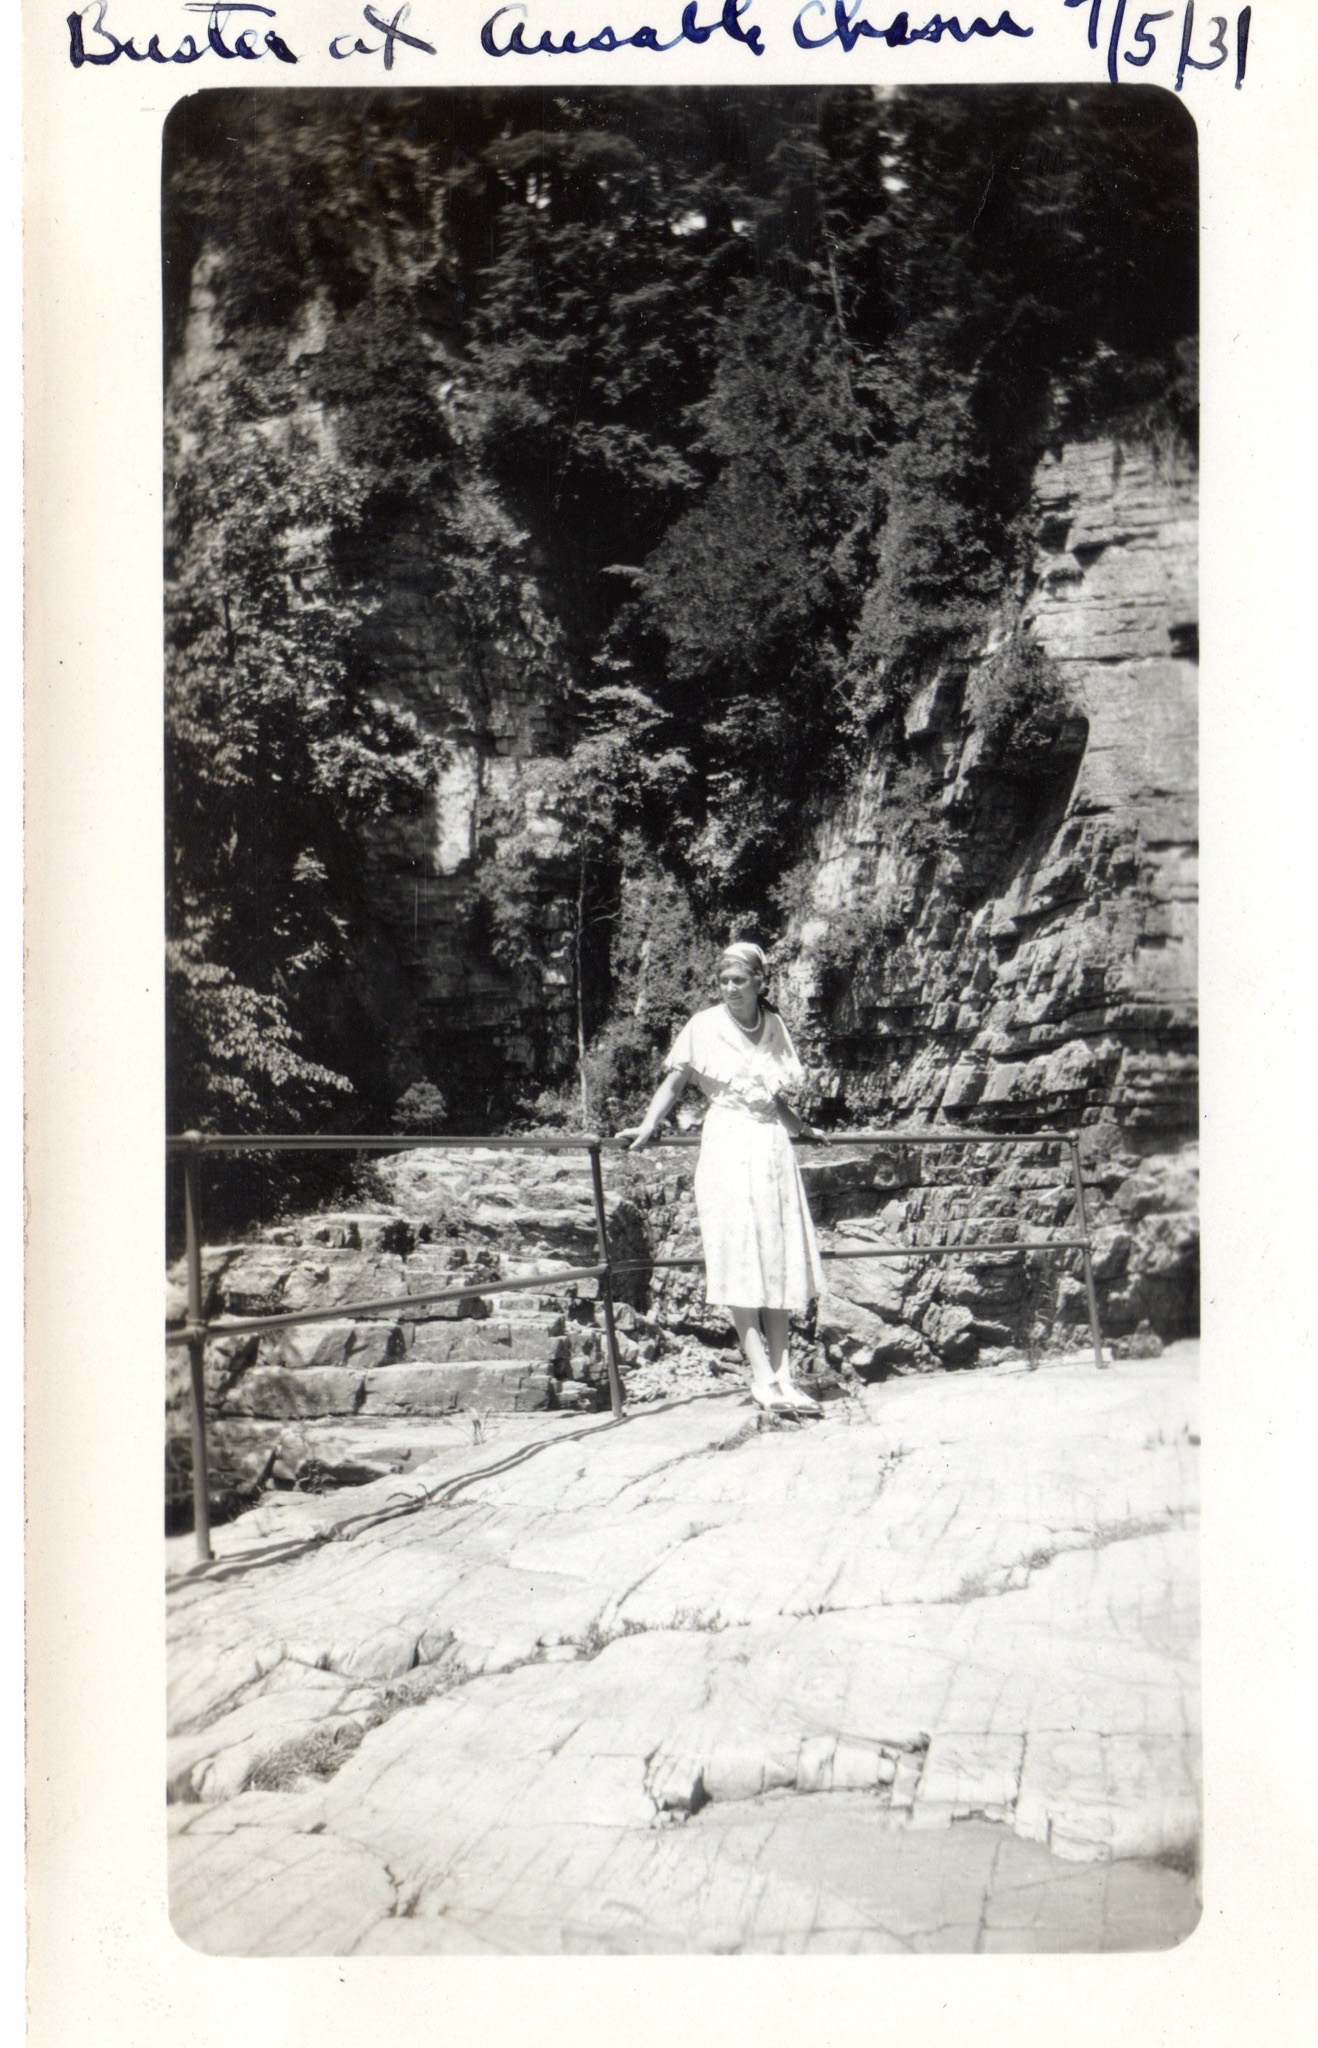 """Titled """"Buster at Ausable Chasm"""", dated July 1931. Located in the Adirondacks"""